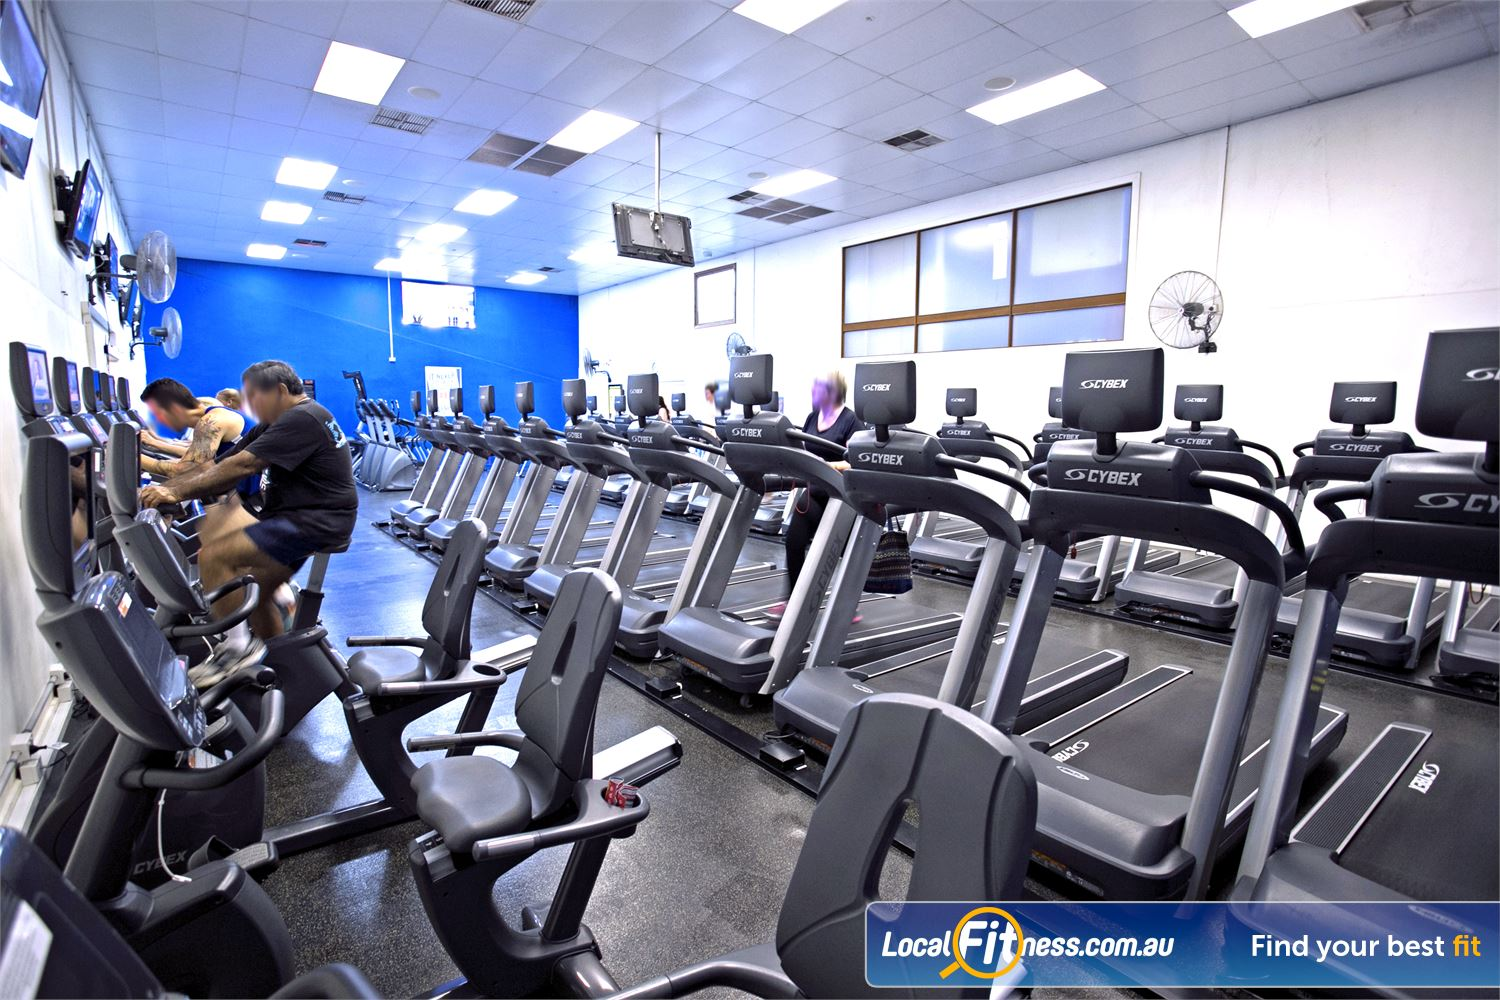 Goodlife Health Clubs Mitcham Near Lower Mitcham Tune into your favorite shows on your personalised LCD screen or cardio theatre.